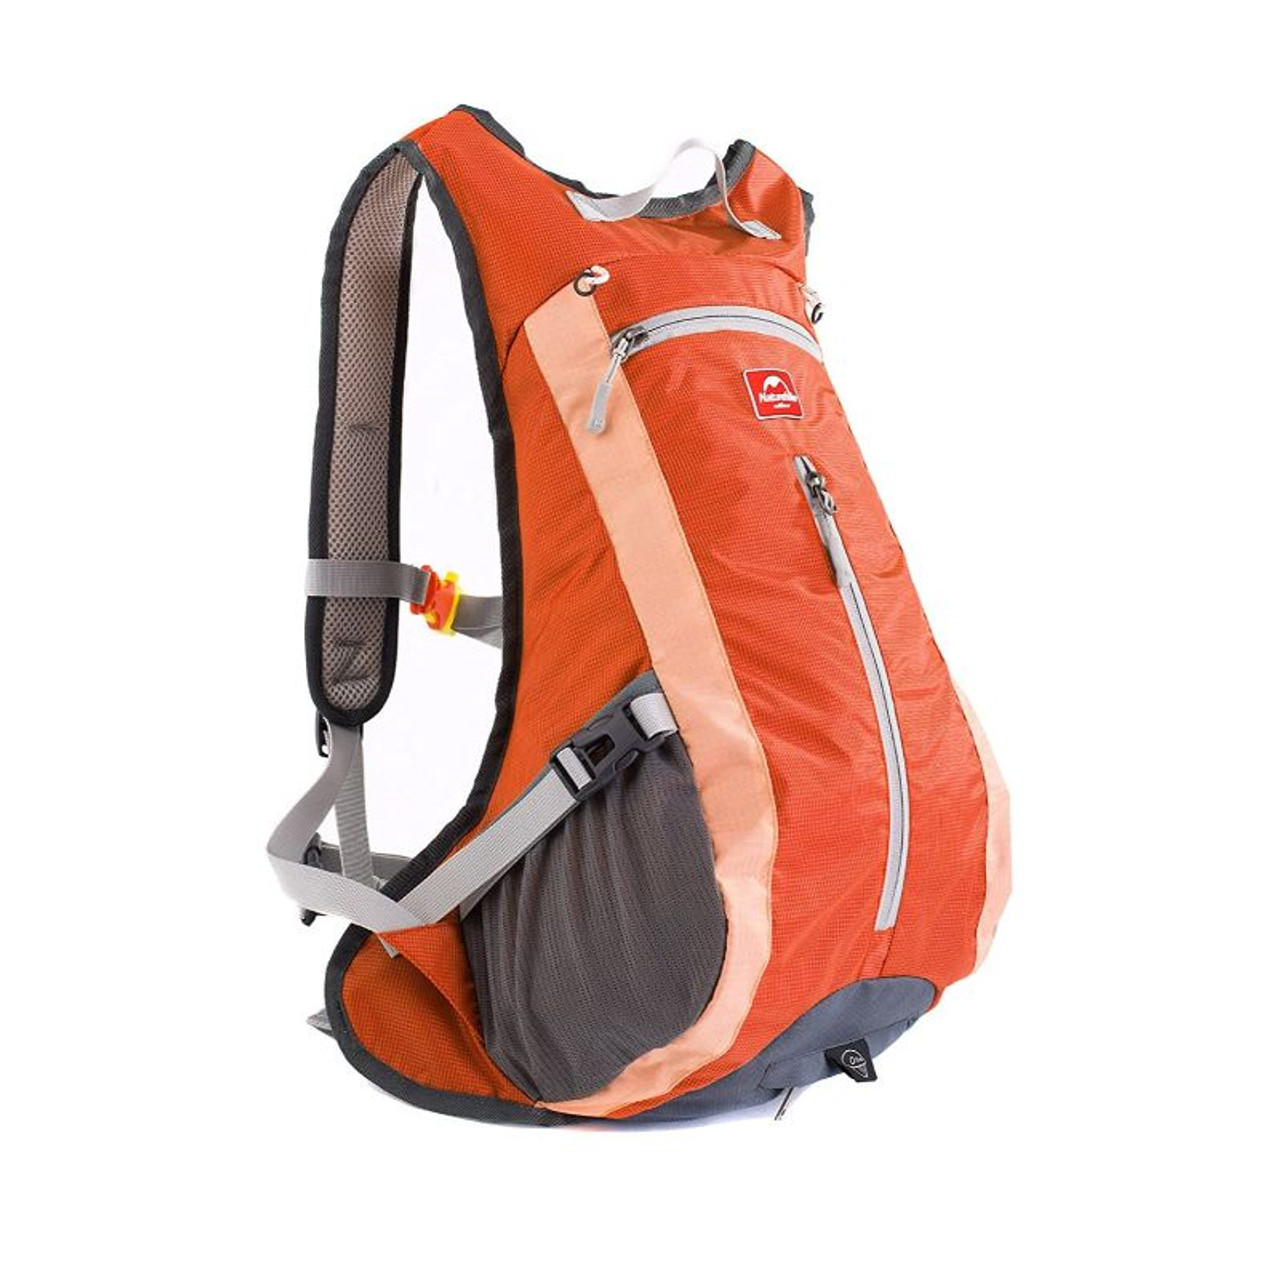 Naturehike 15L Lightweight Durable Travel Hiking Cycling Backpack